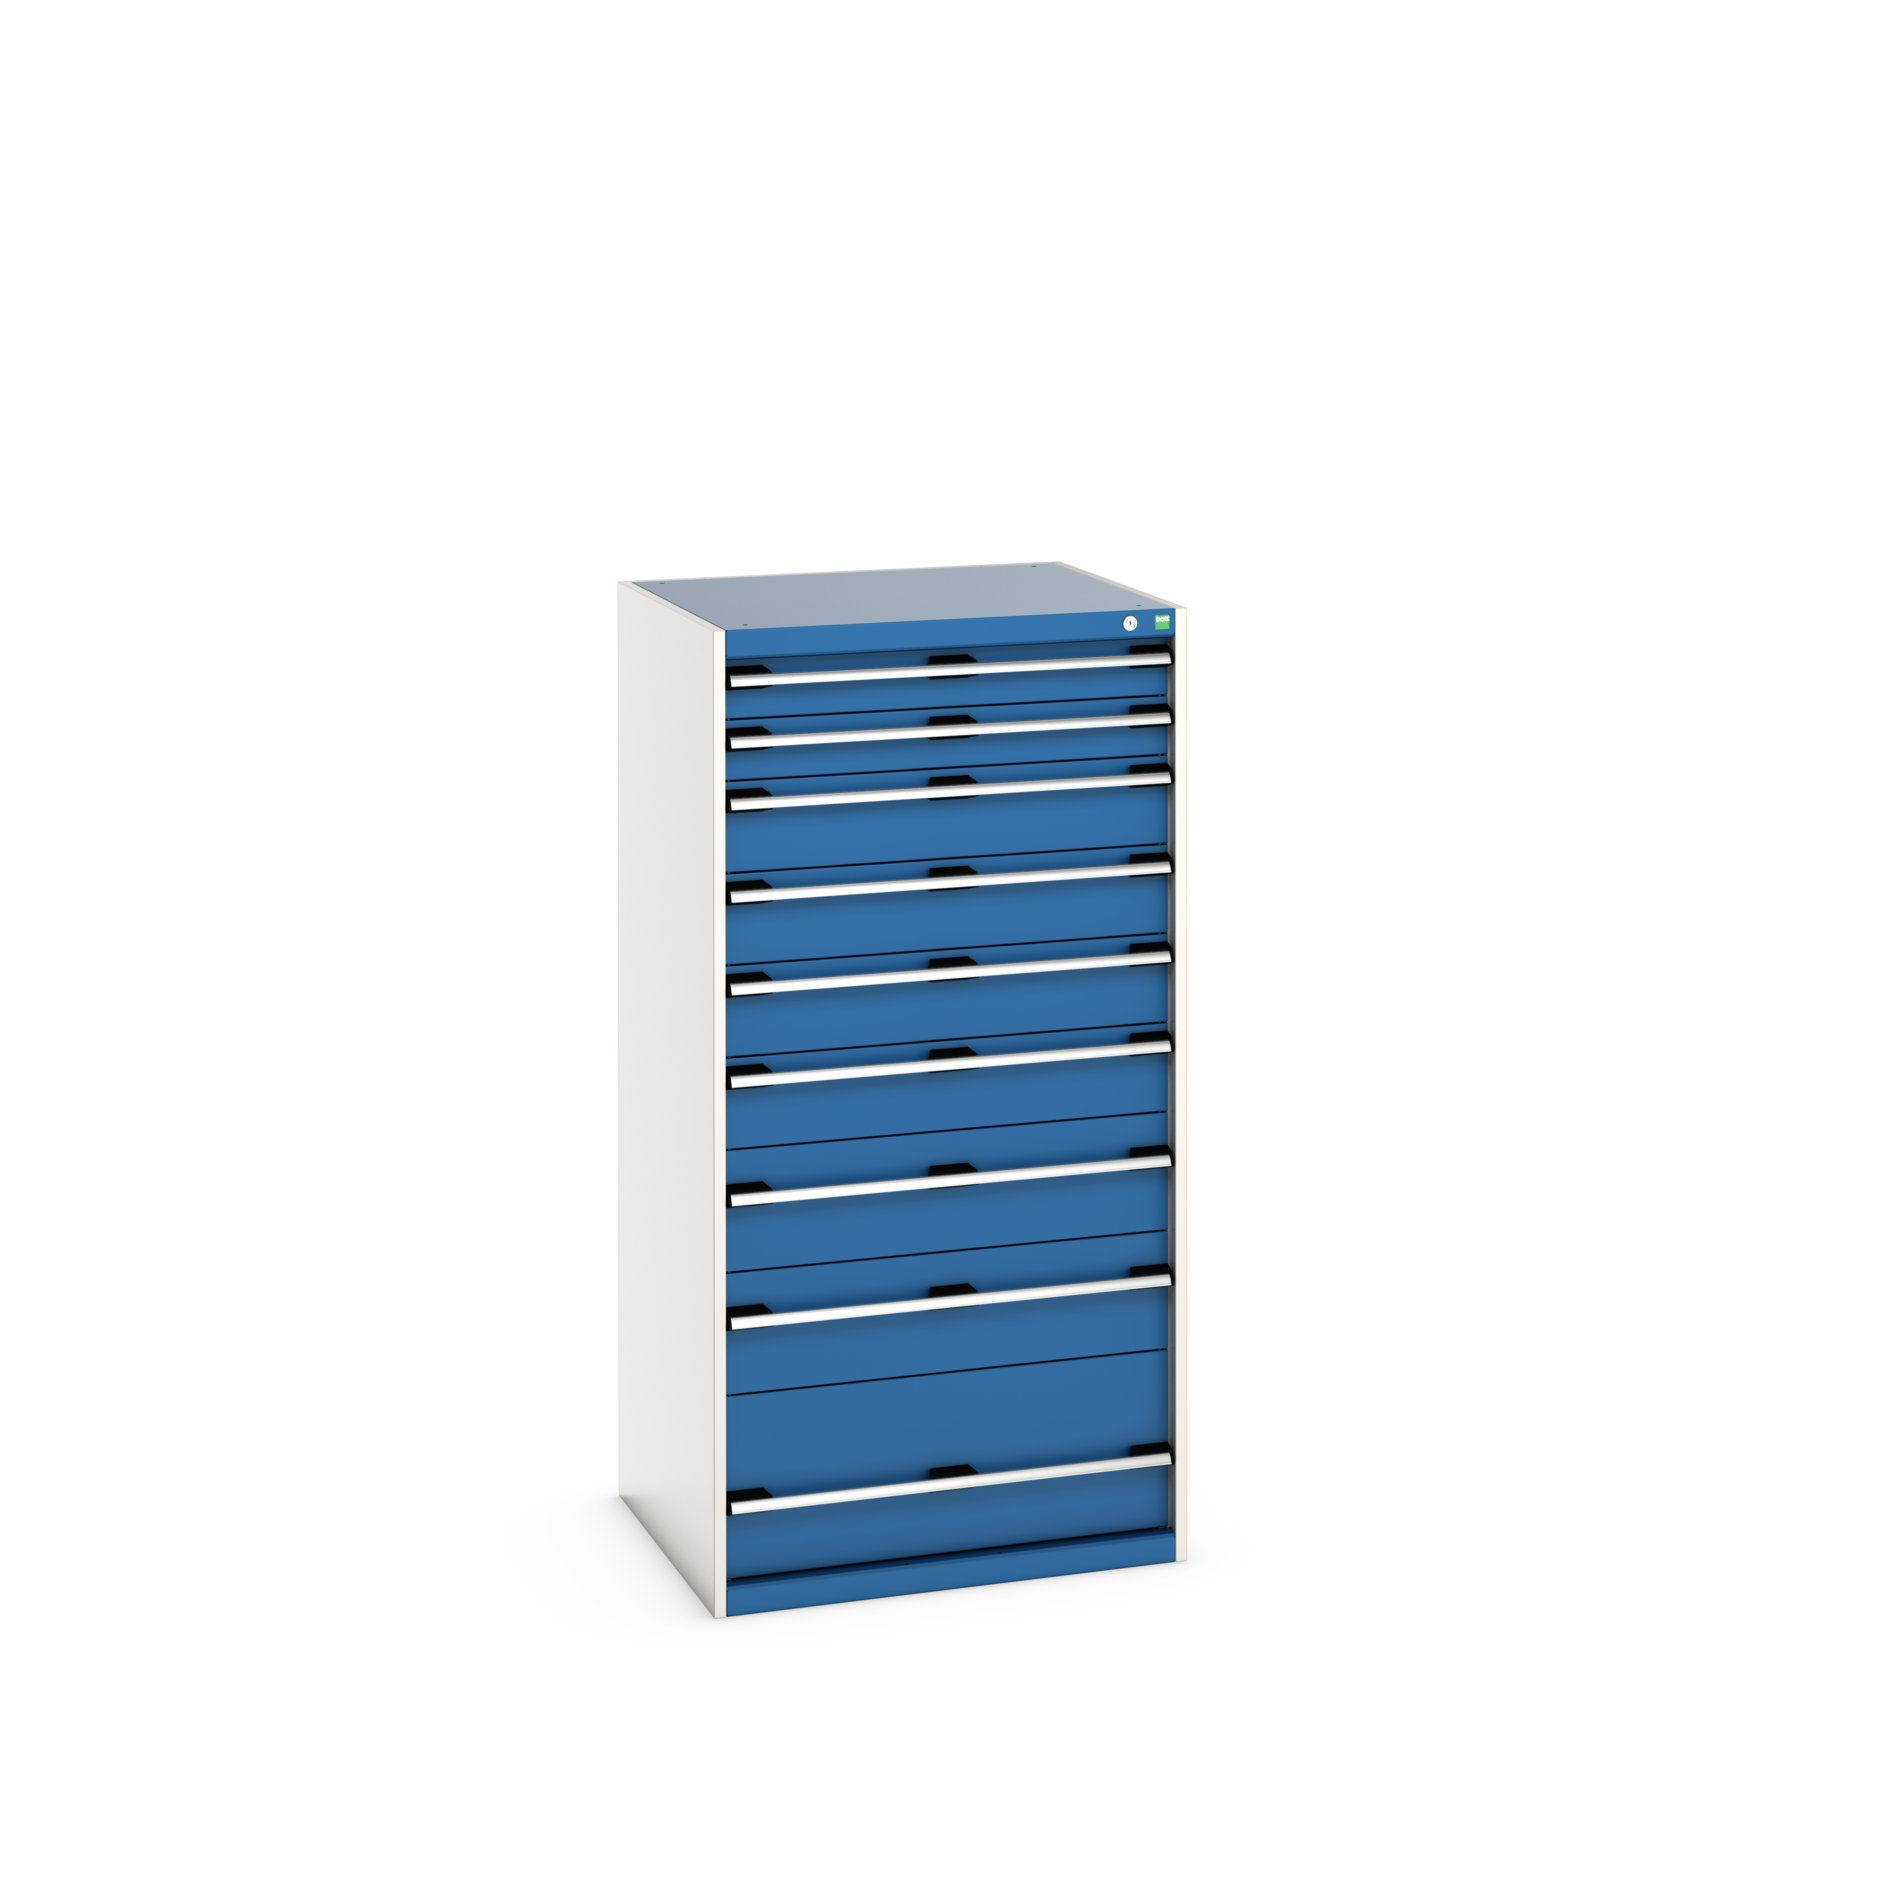 Bott Cubio Drawer Cabinet With 9 Drawers